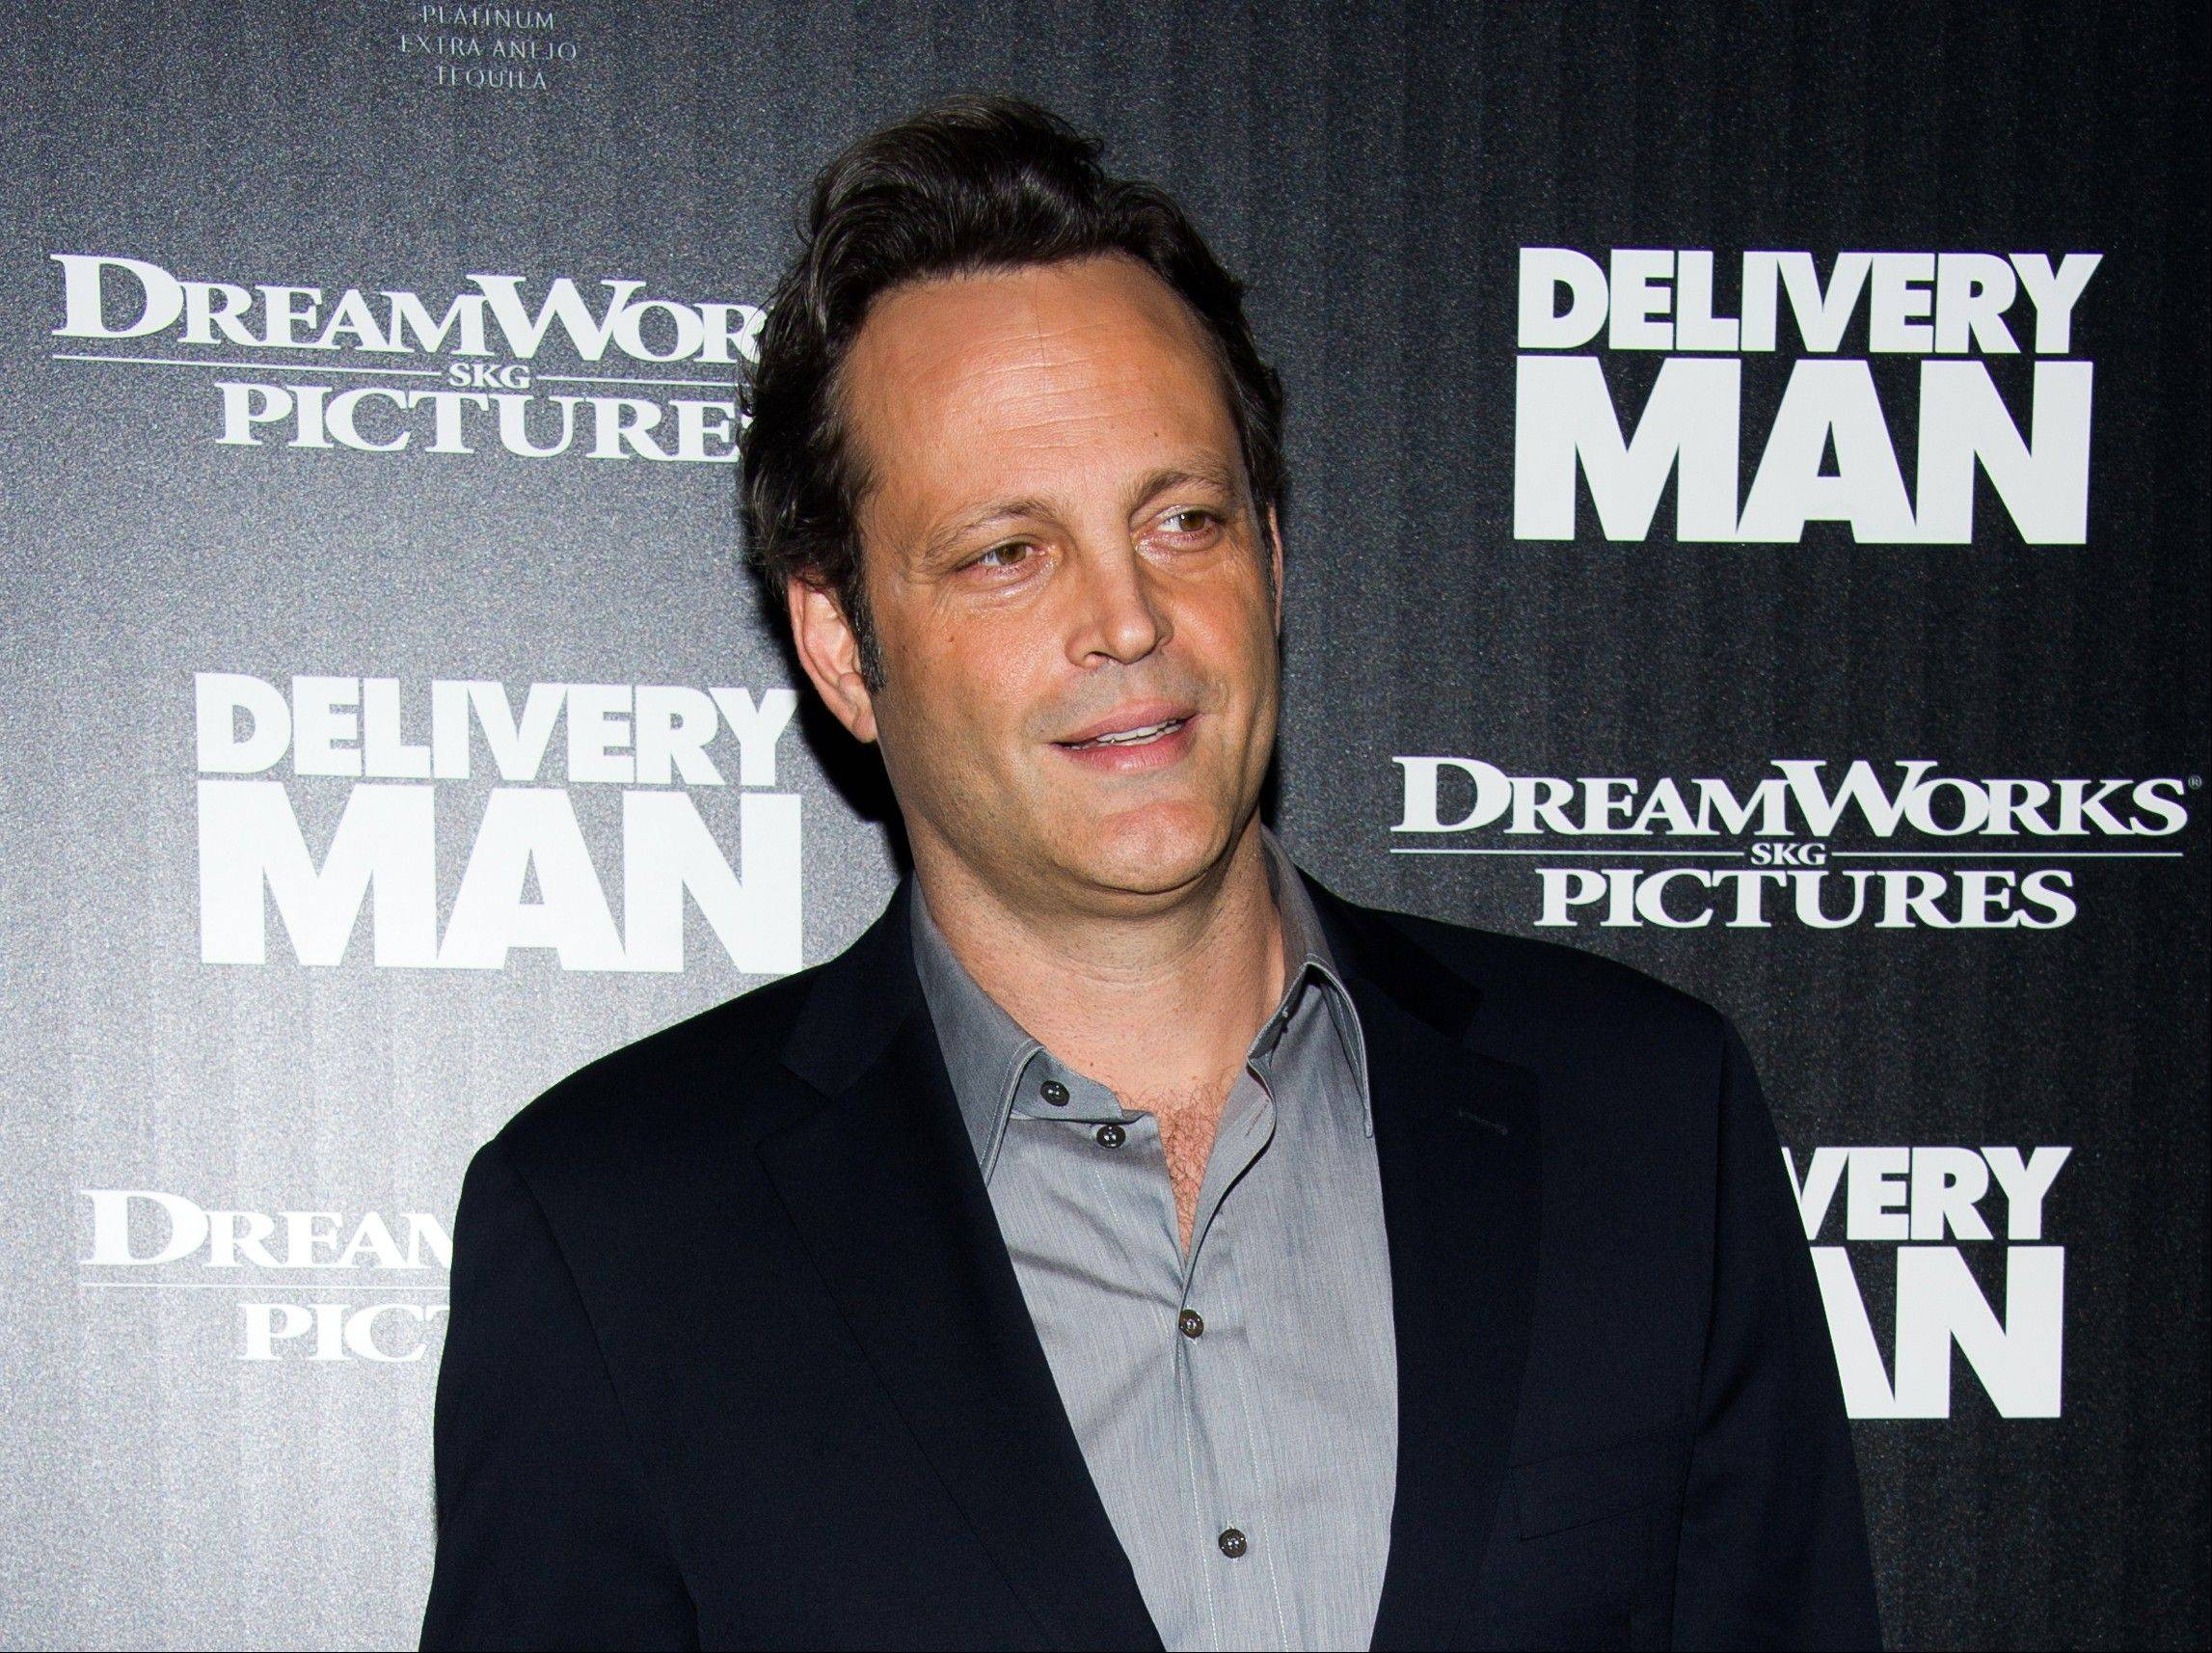 In the new movie �Delivery Man,� Vince Vaughn plays a sperm donor who learns he�s fathered more than 500 kids.